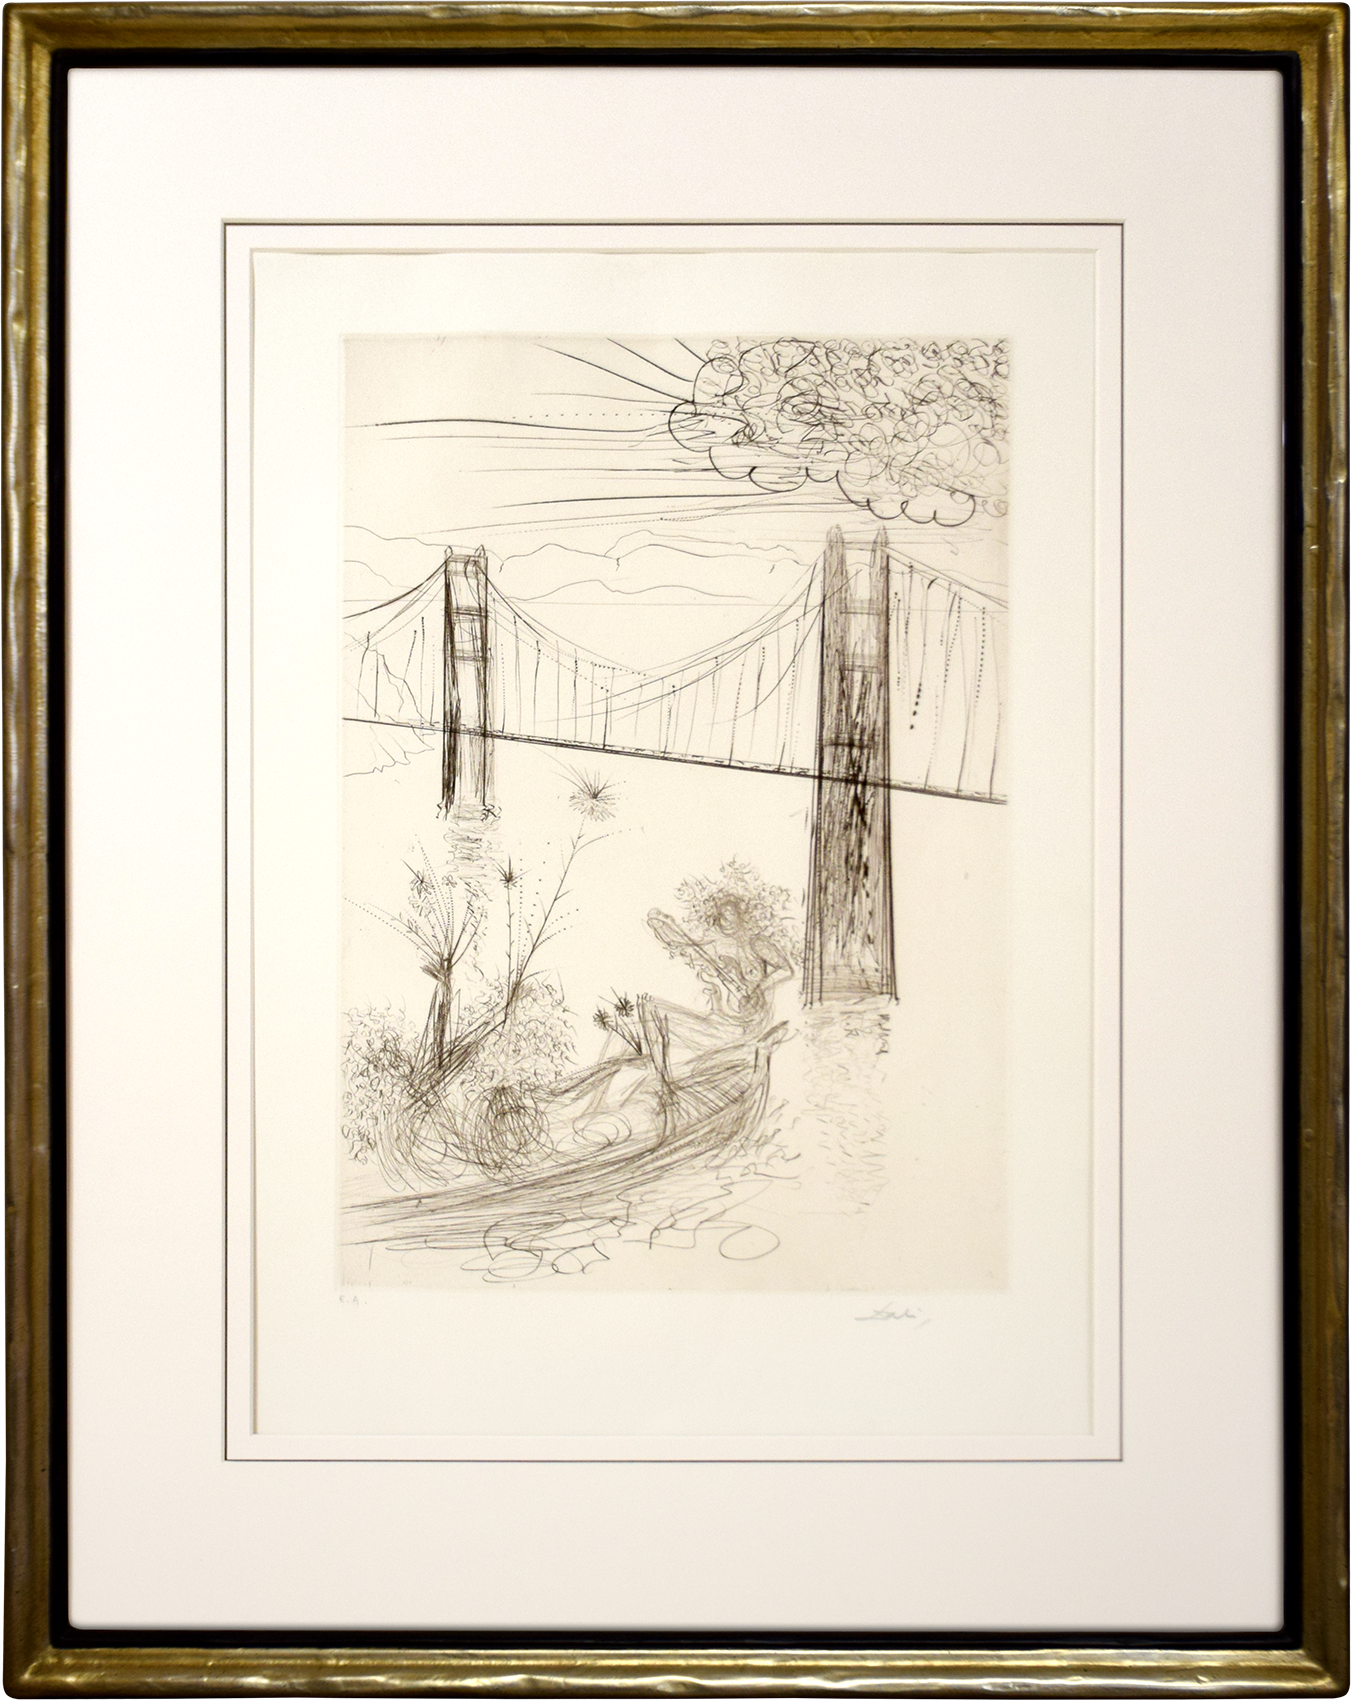 Salvador Dalí - Golden Gate Bridge , 0611-008-532